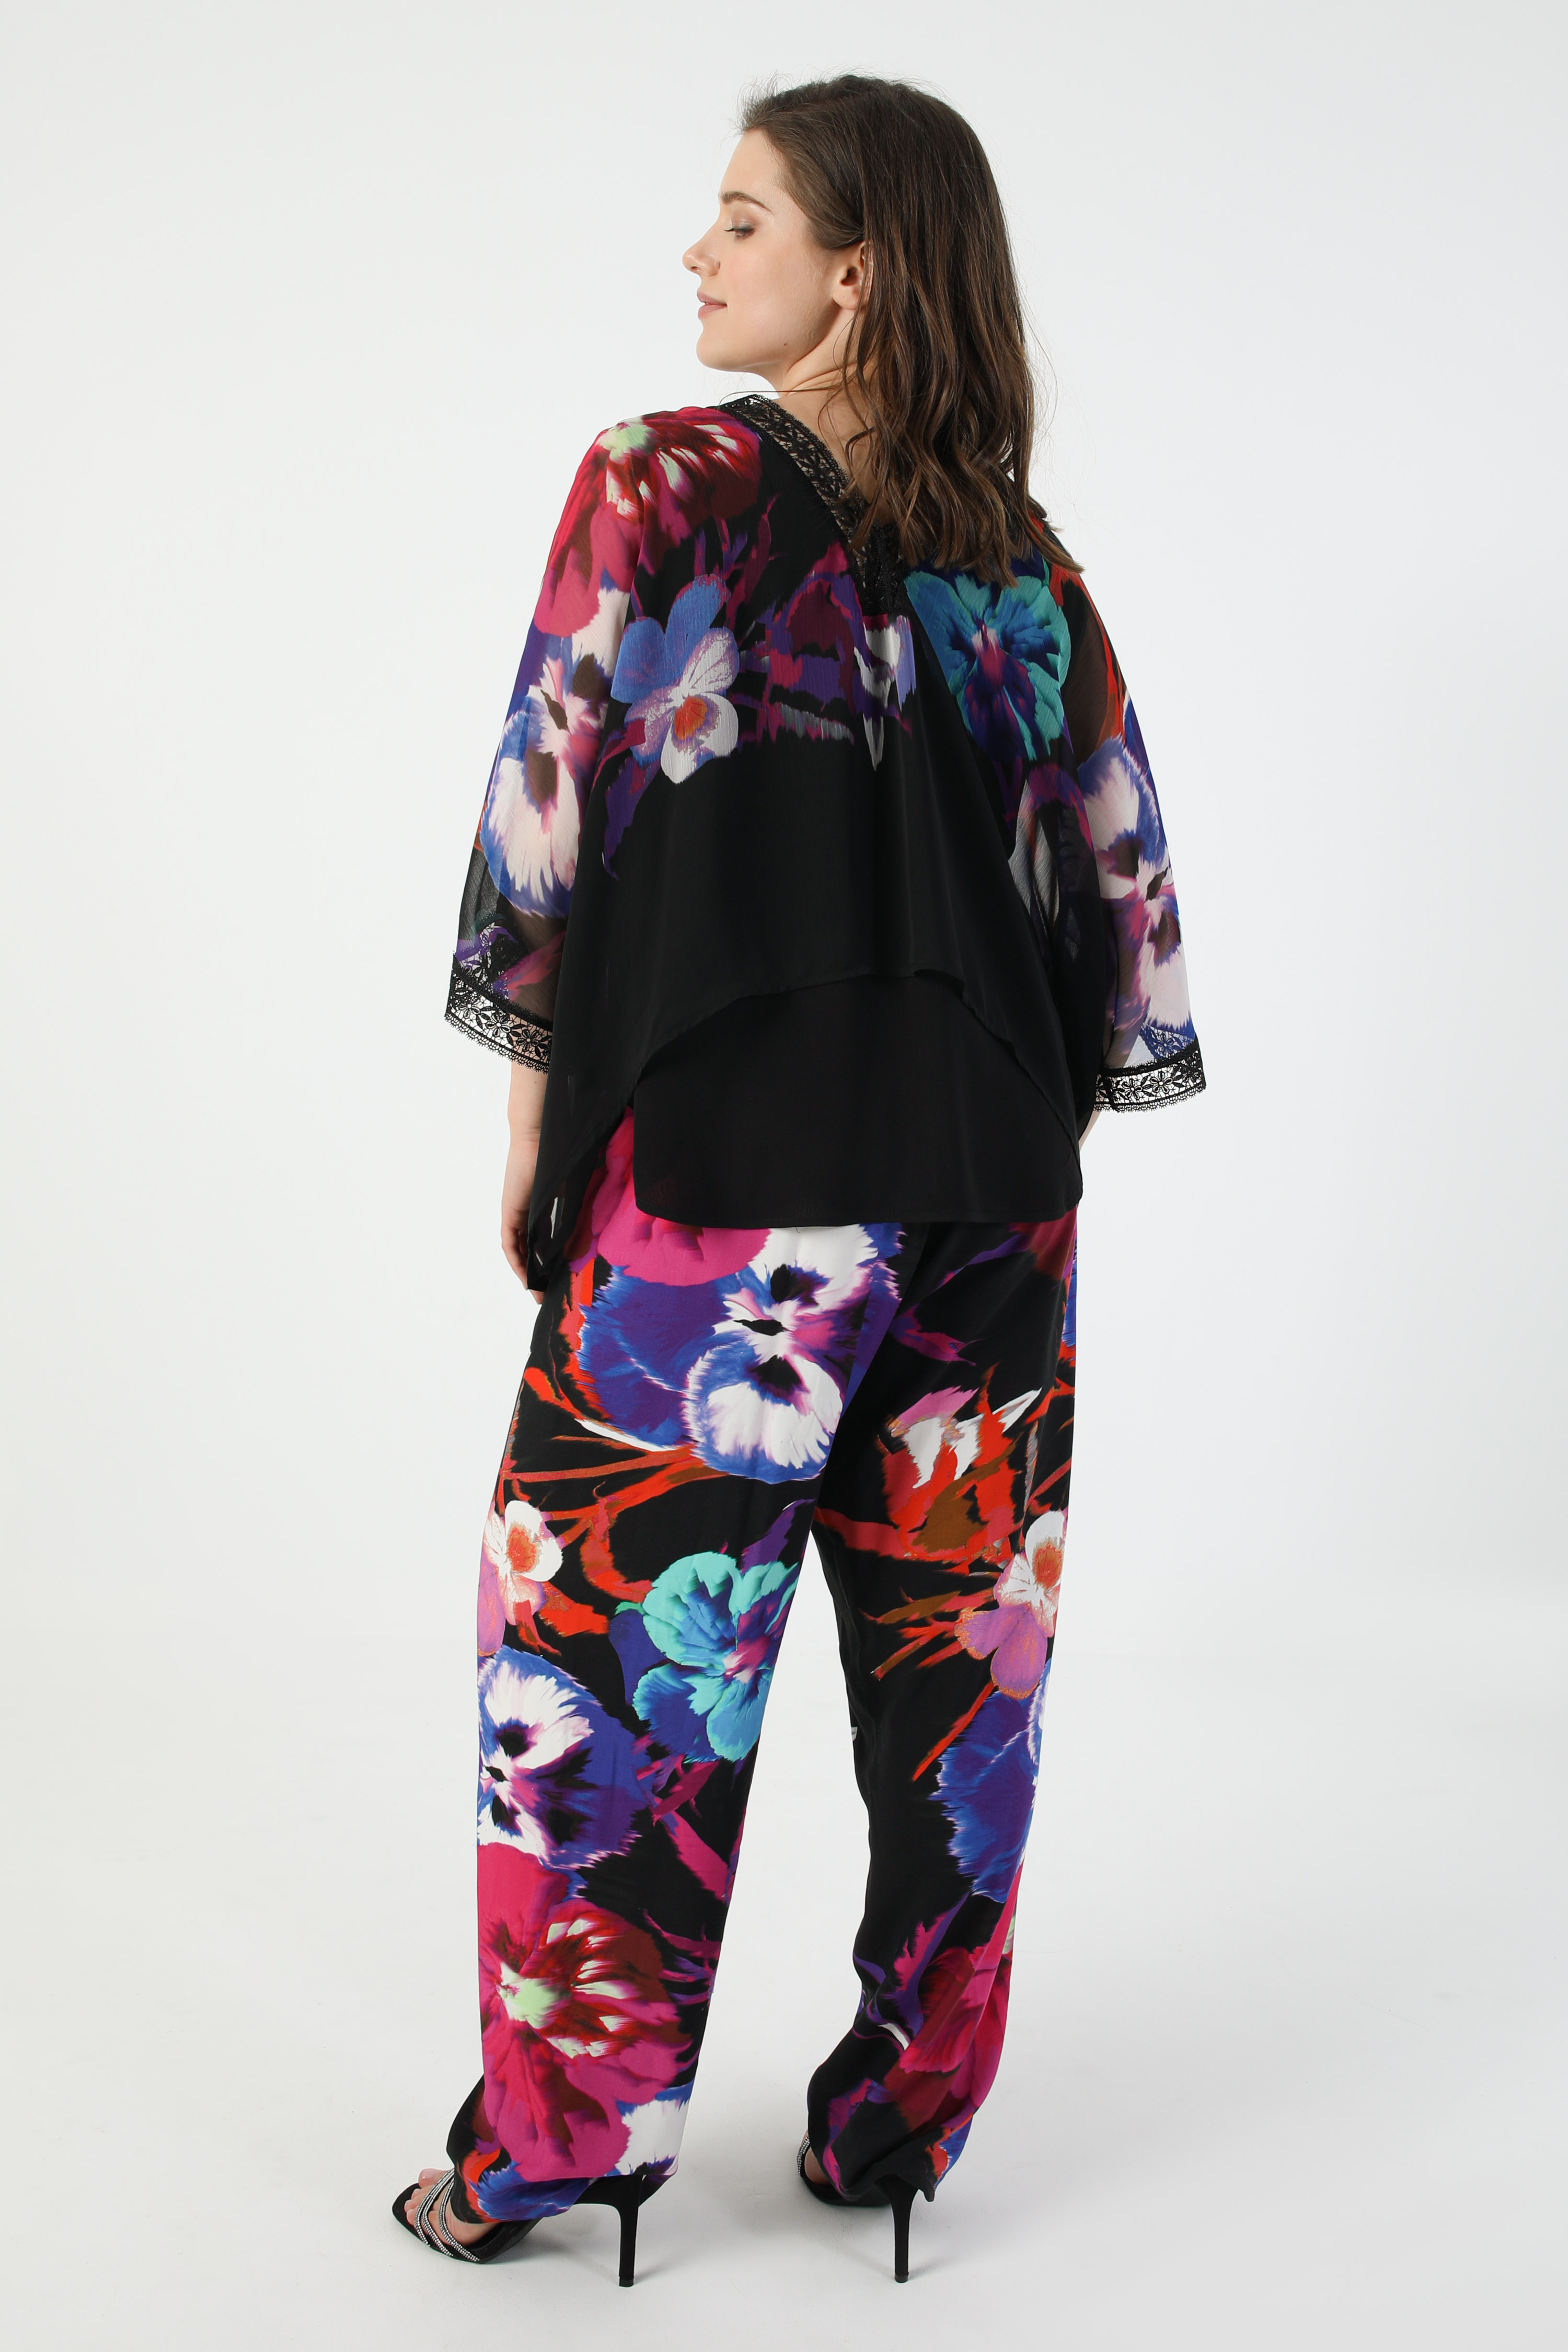 Trousers with placed design (shipping May 10/15)